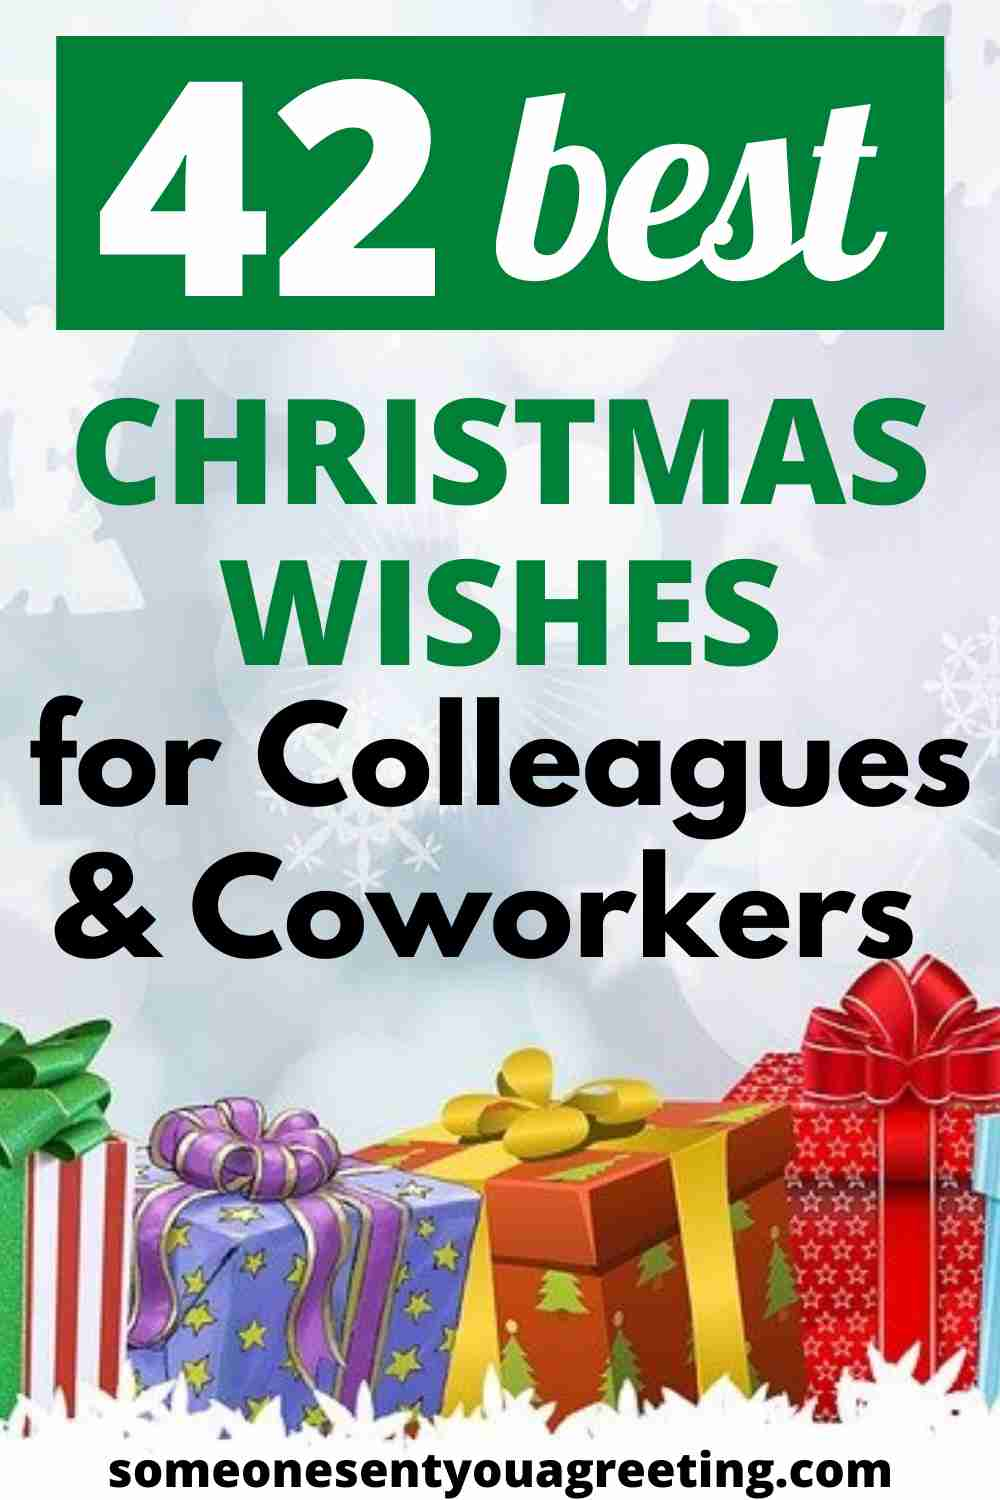 Christmas wishes for colleagues and coworkers